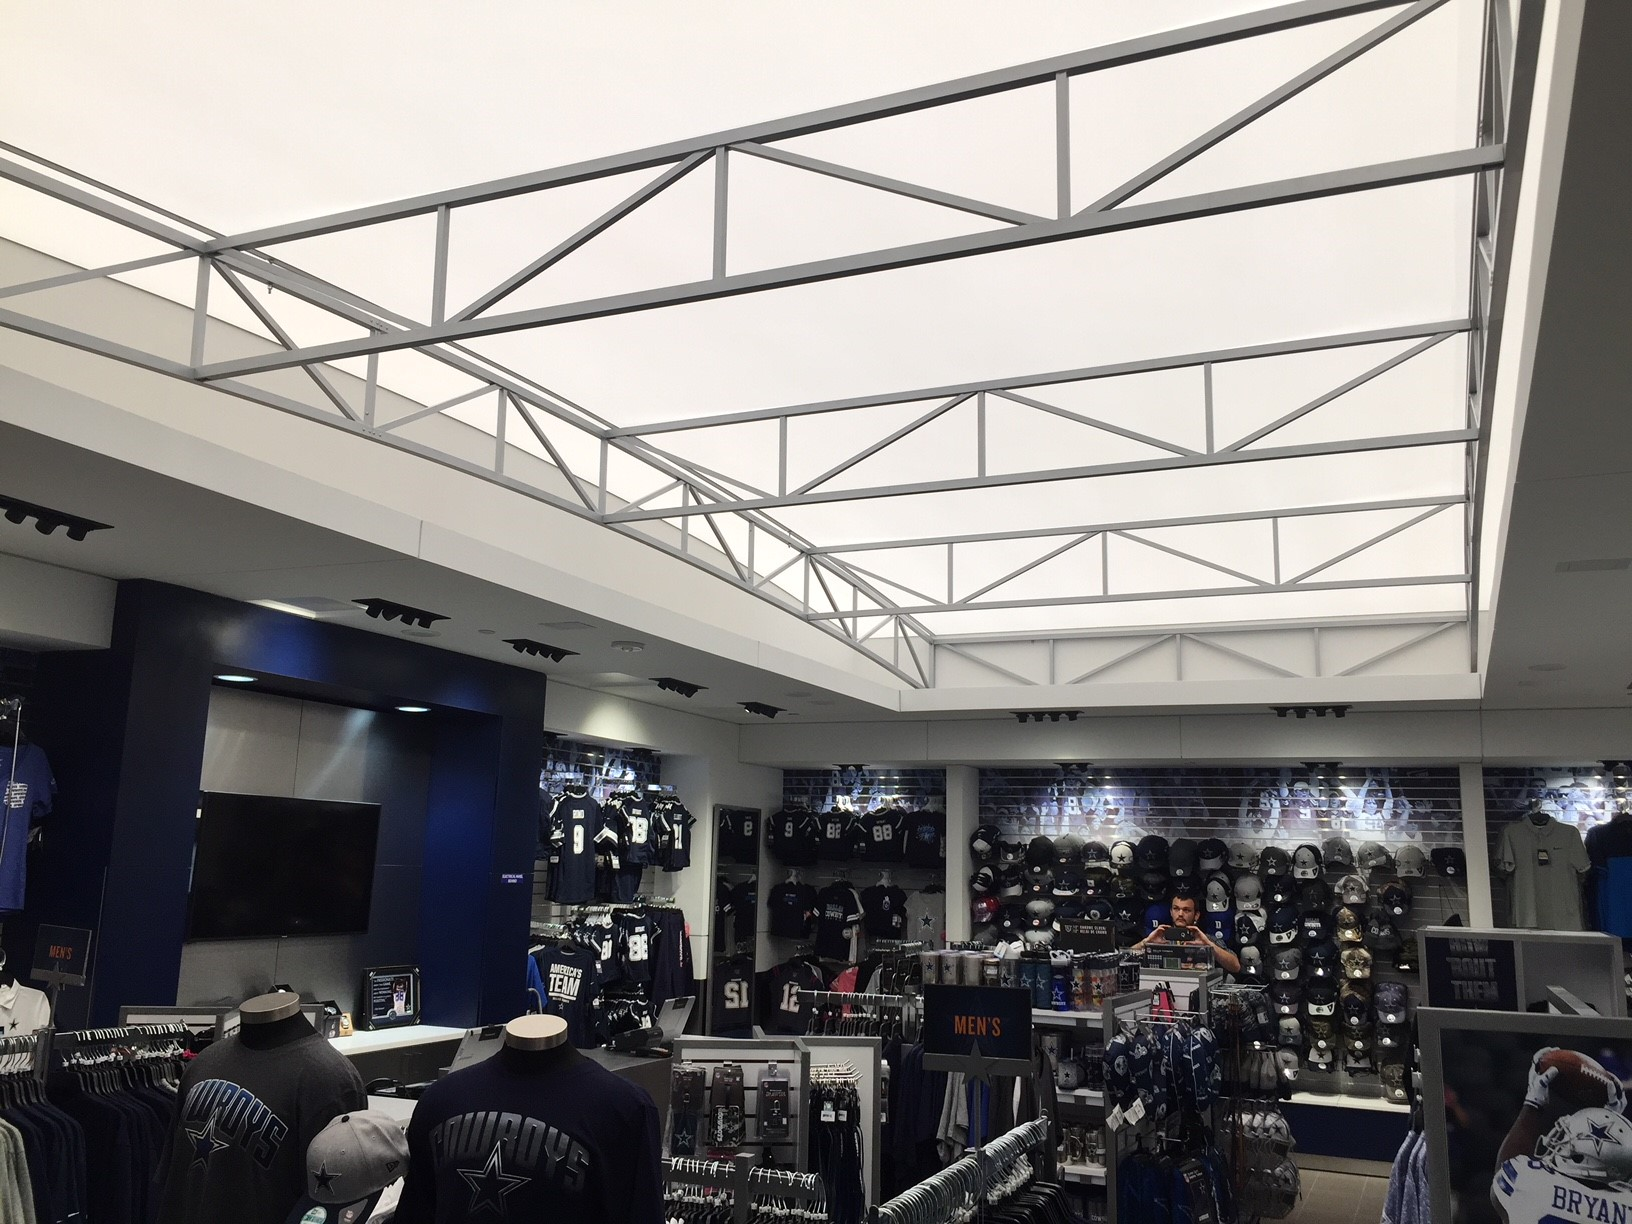 Stretch Fabric Structure - Acoustic Light - Dallas Cowboys